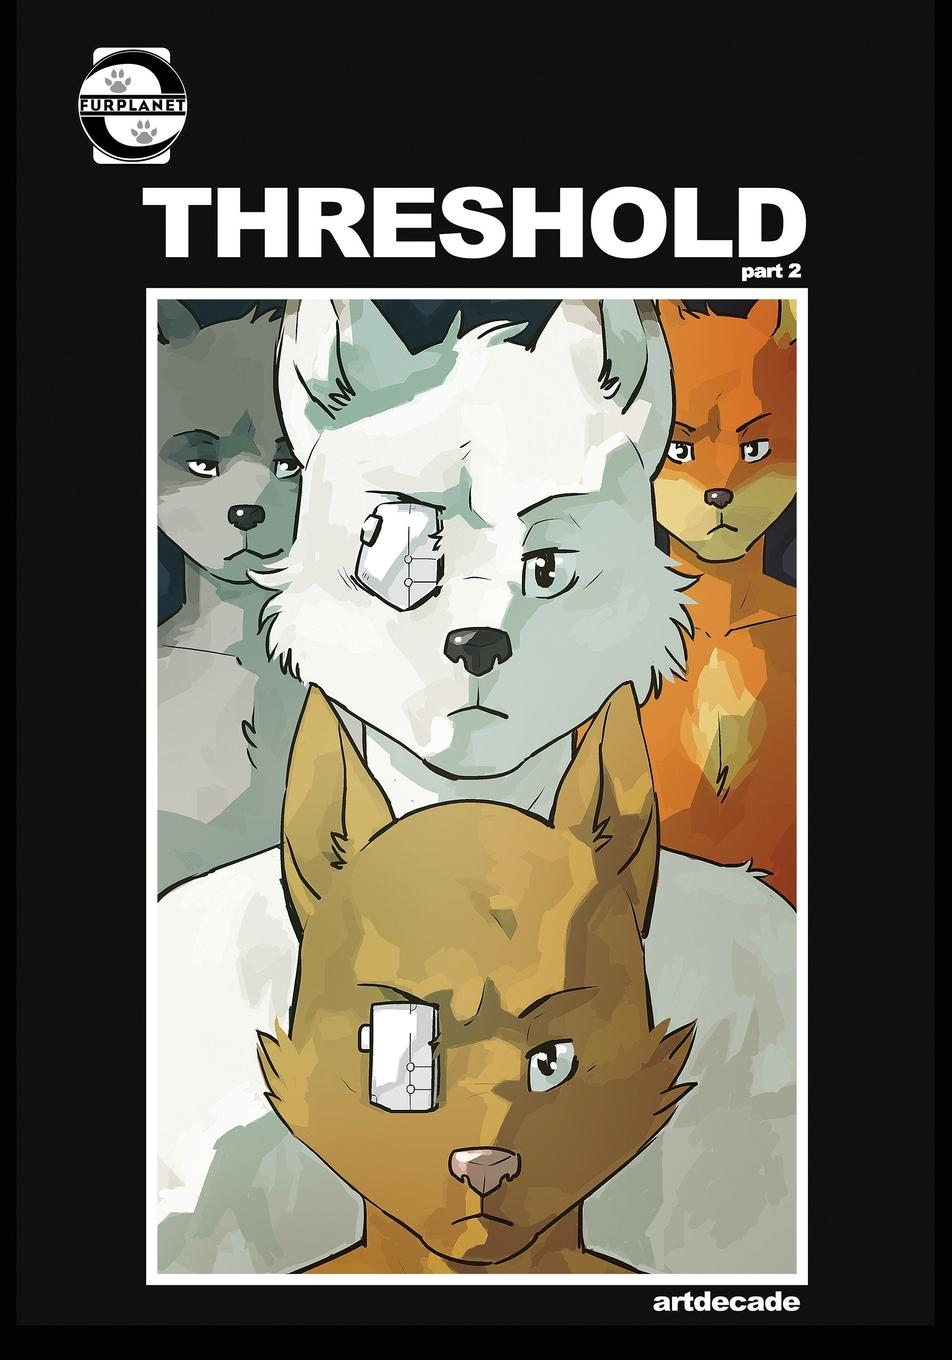 Threshold, part 2